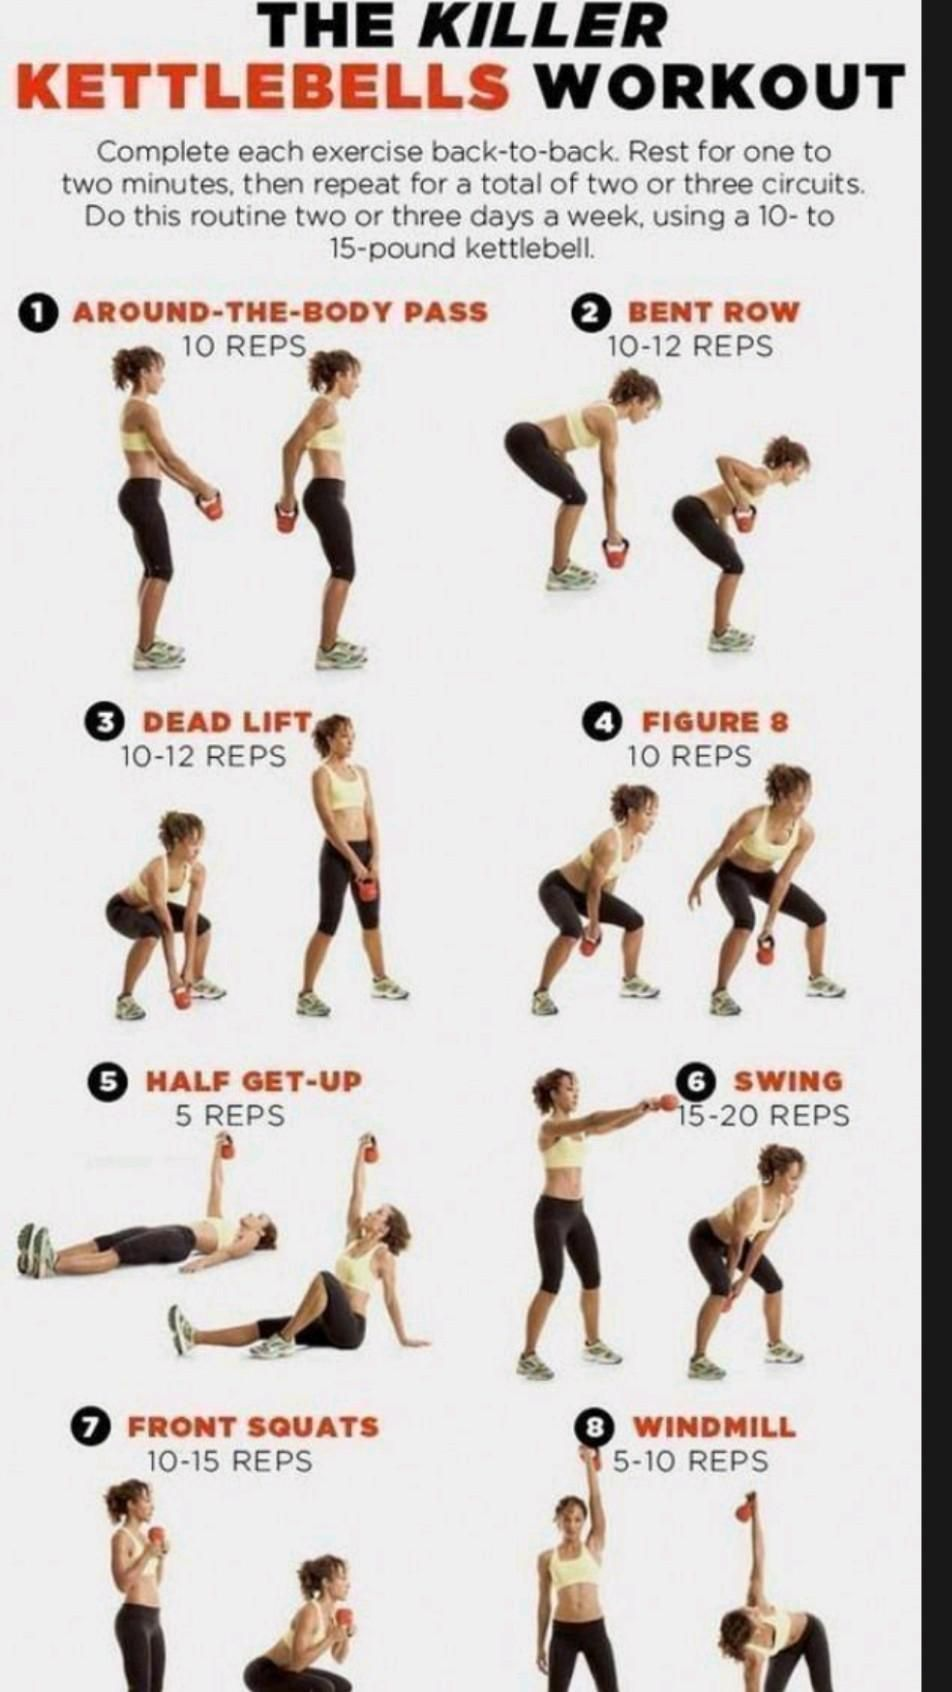 The Killer workouts